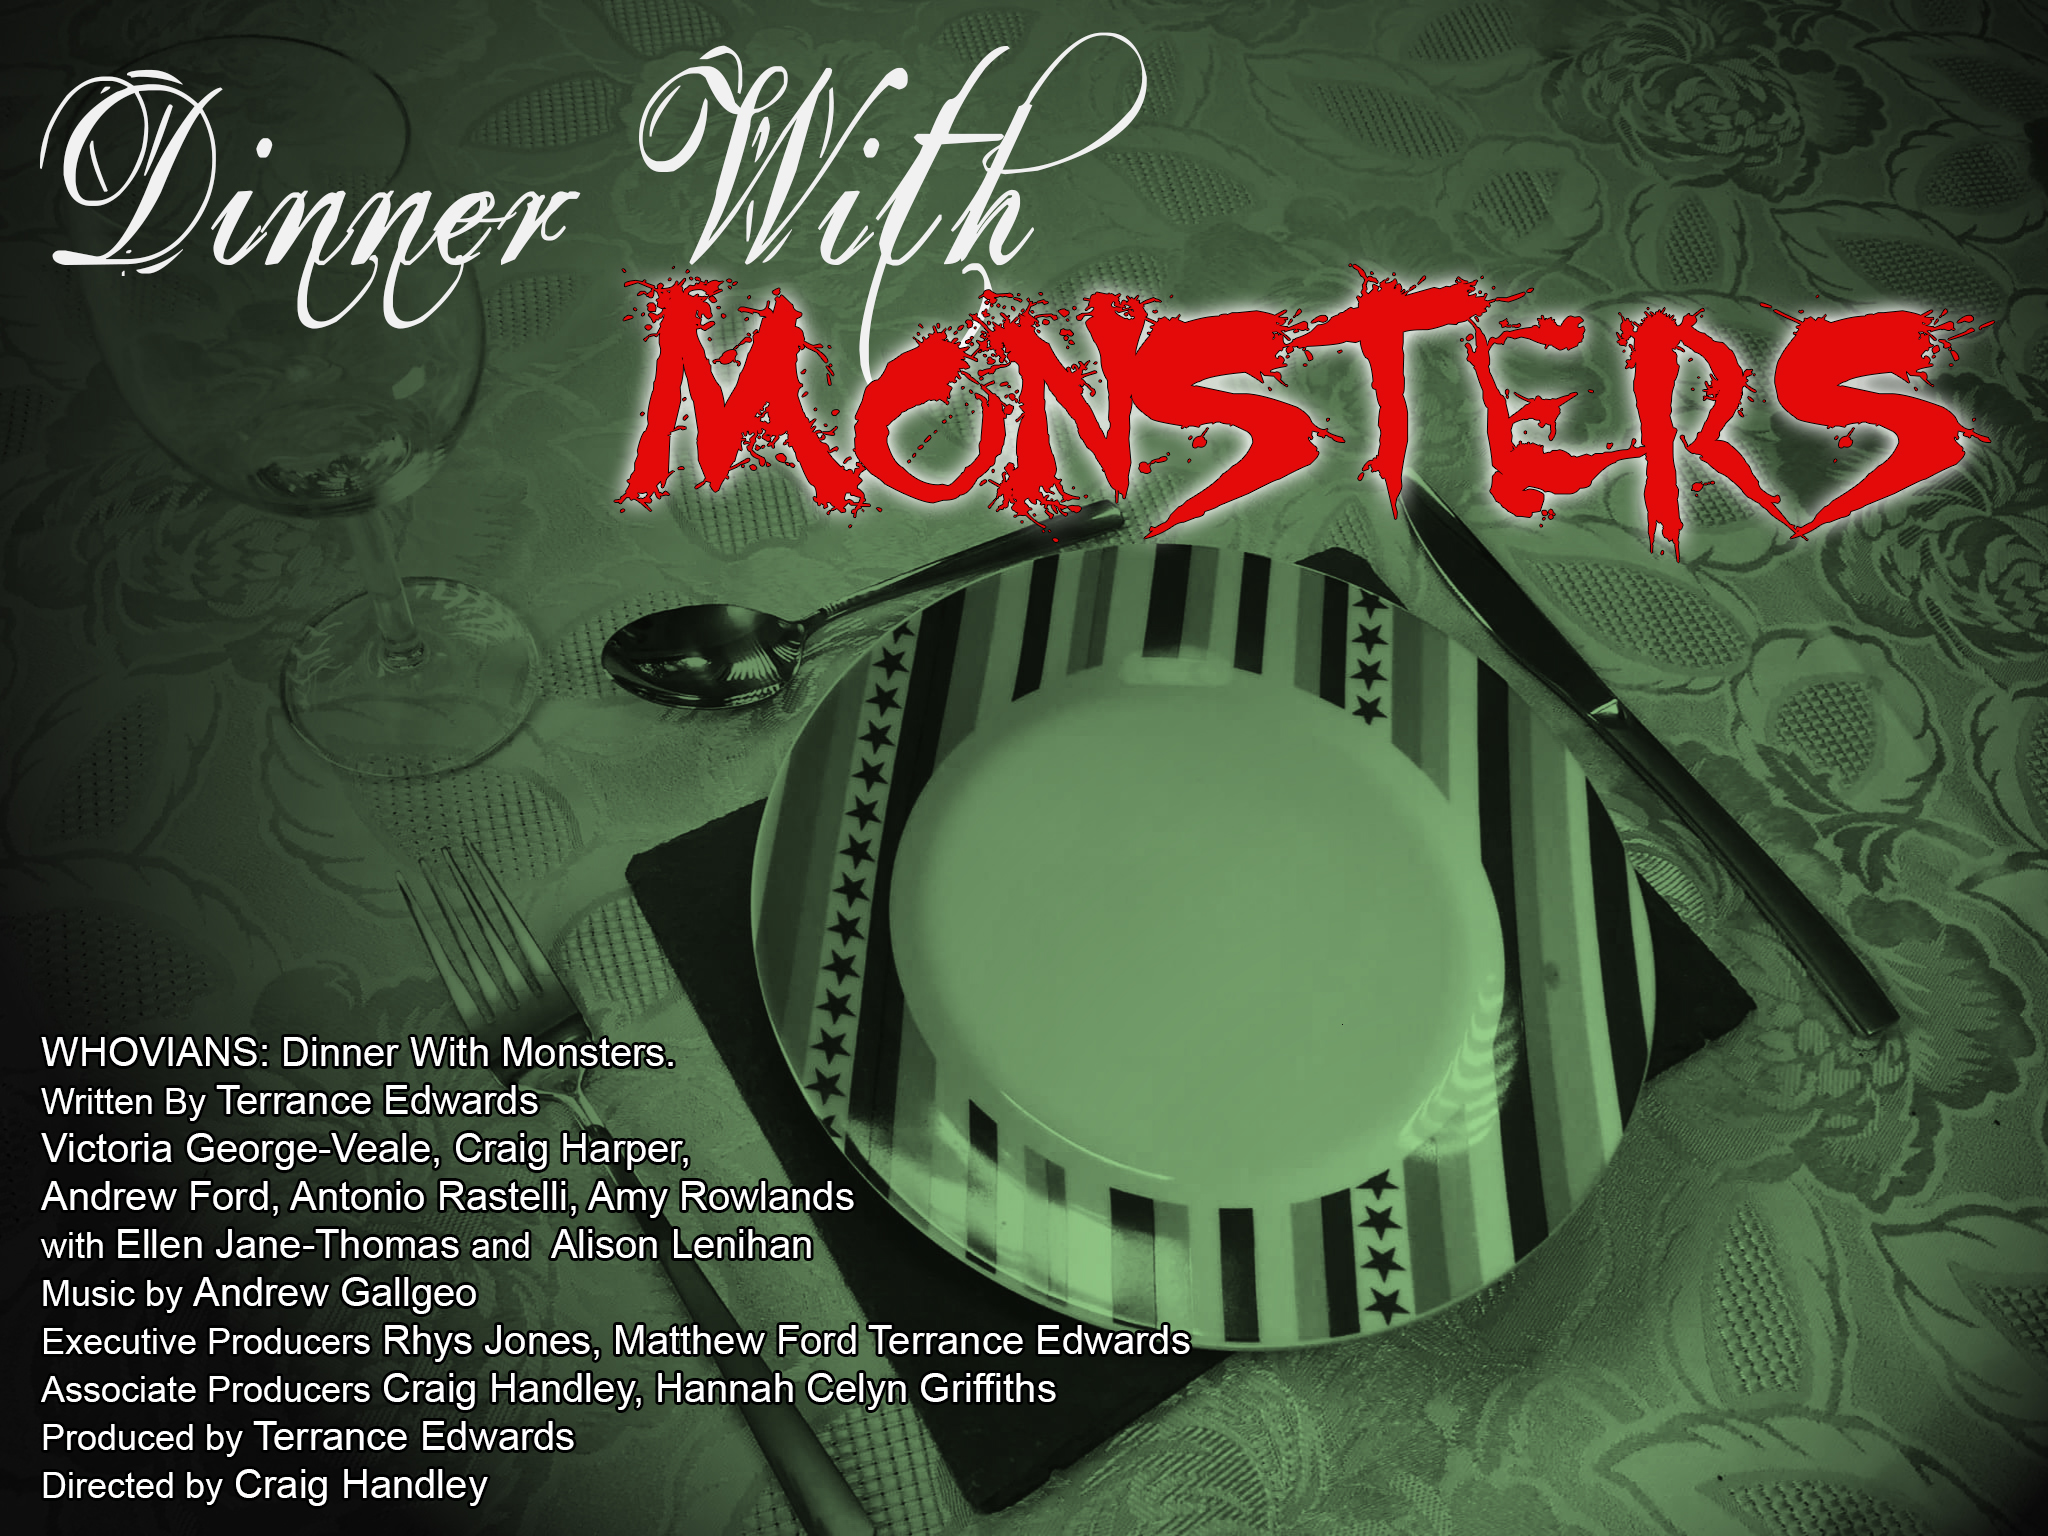 Episode 2.2 - Dinner With Monsters